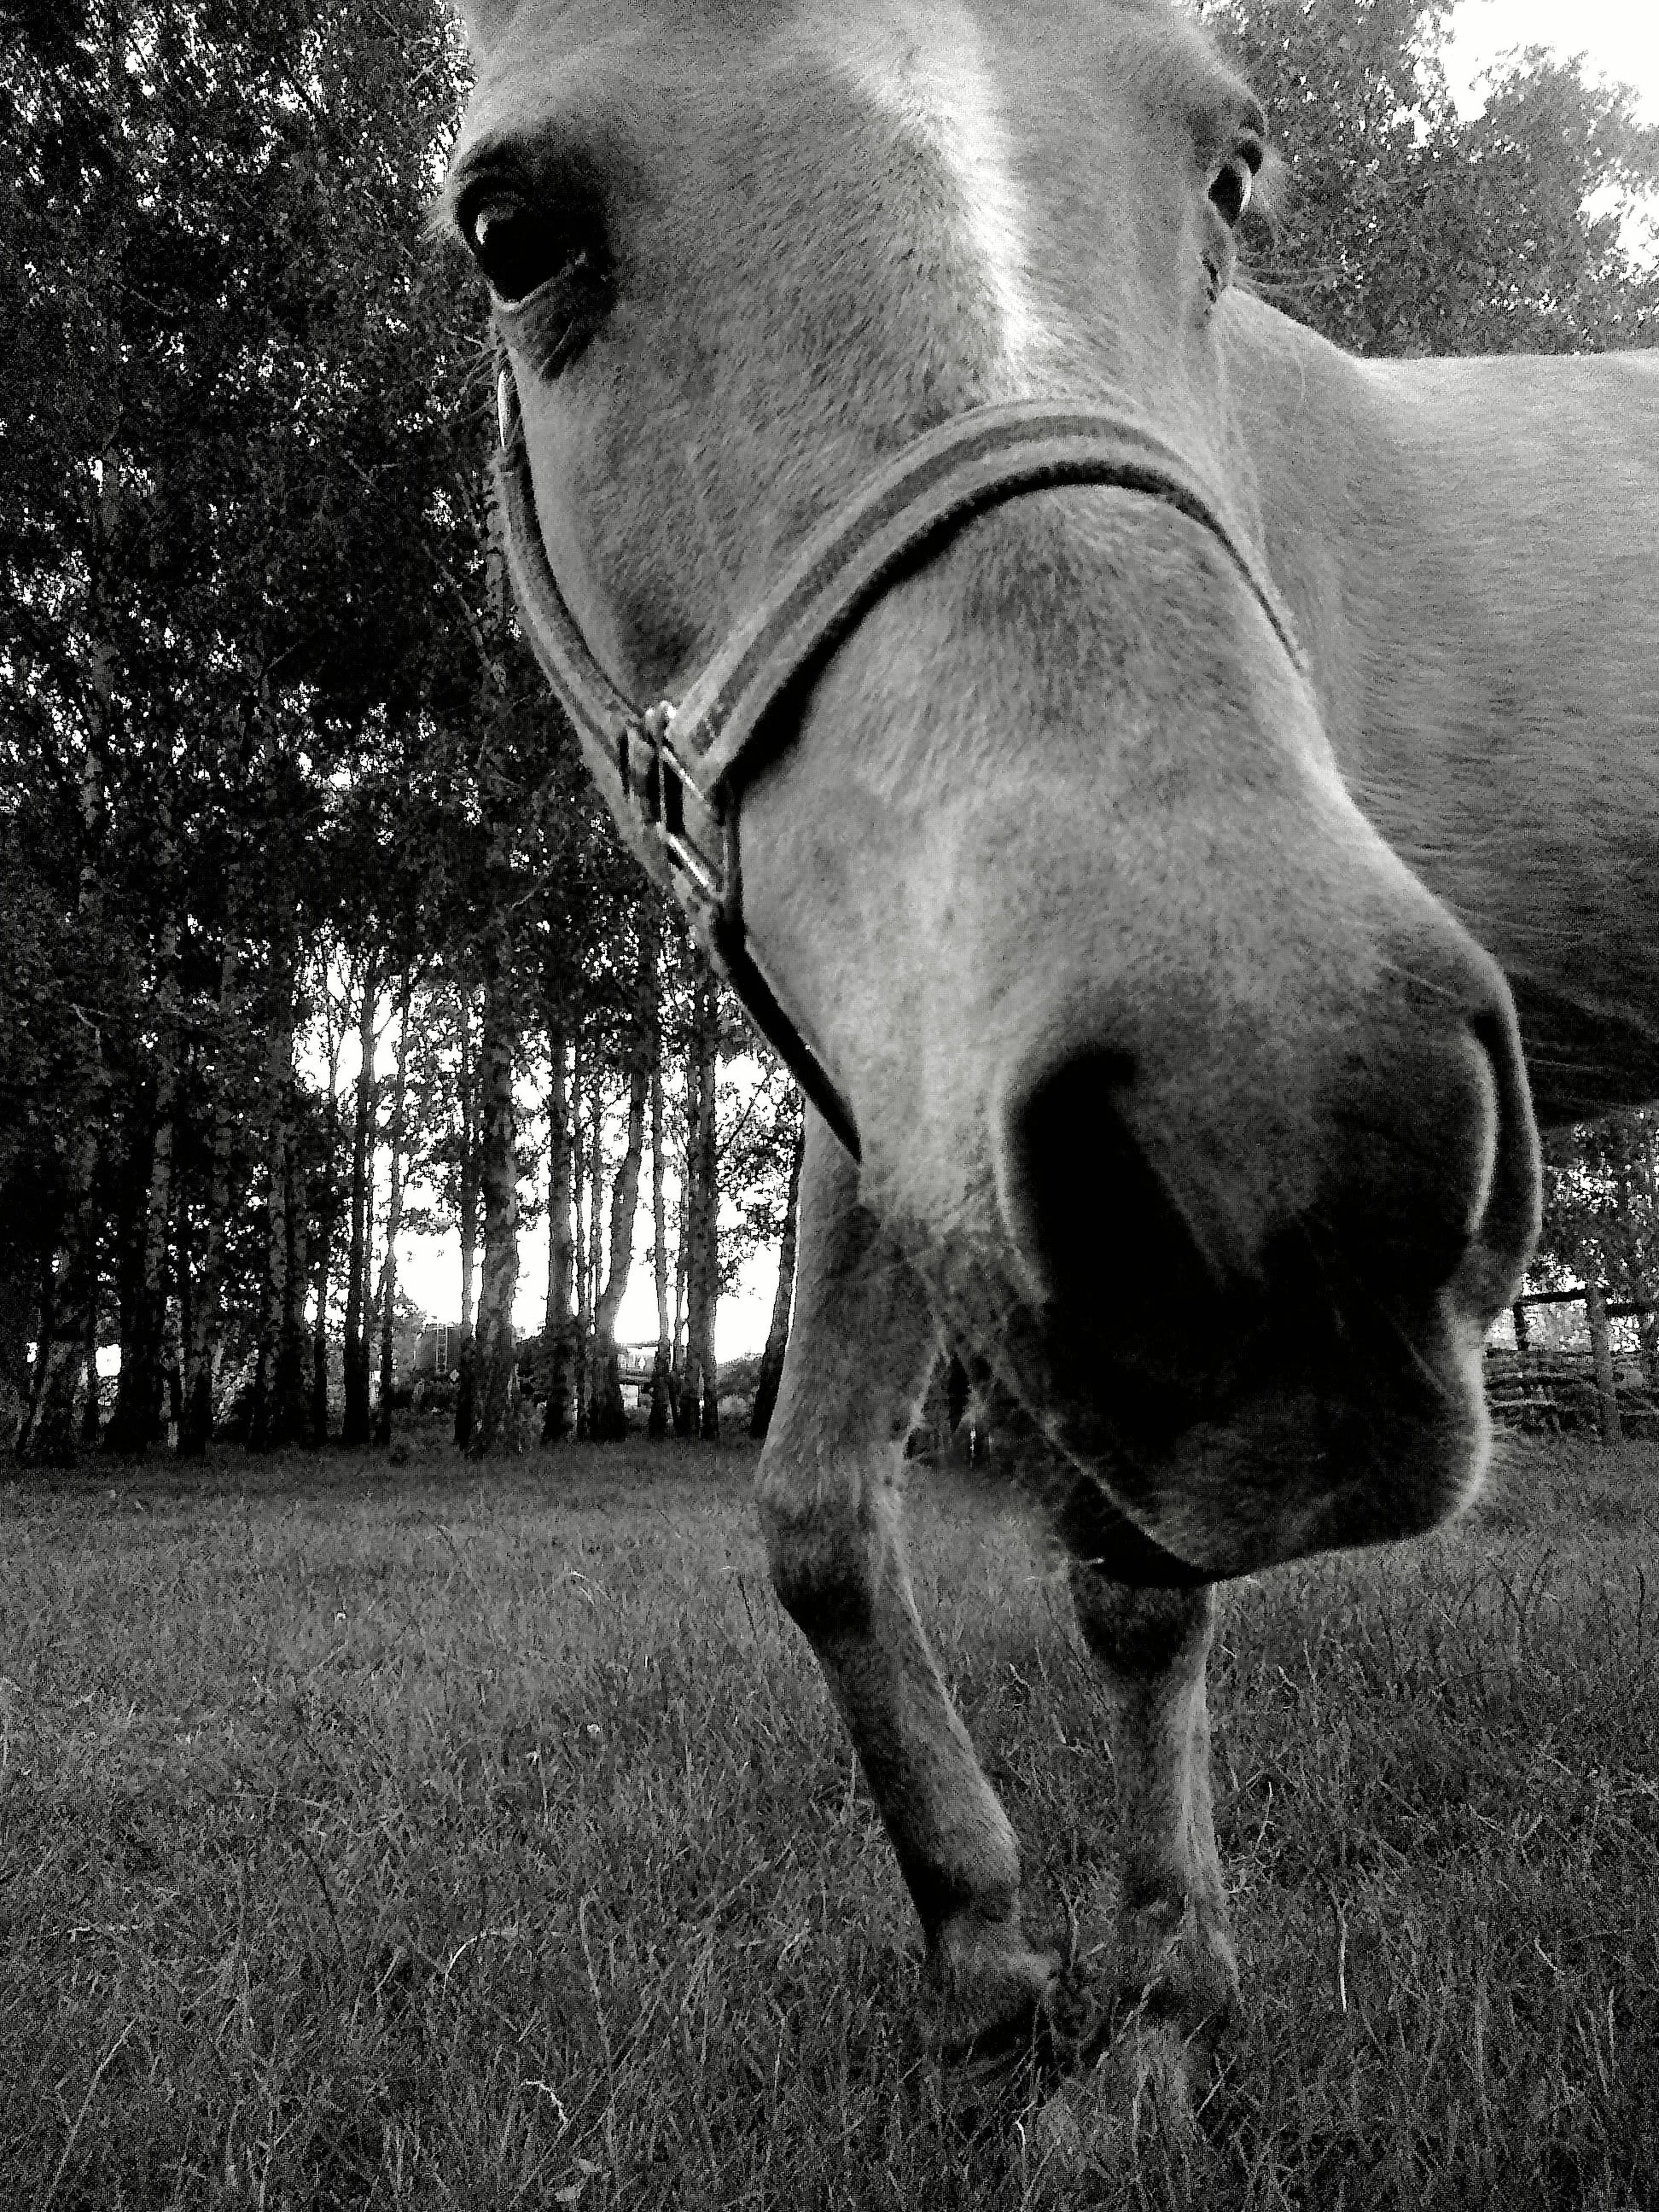 horse, mammal, animal themes, domestic animals, one animal, tree, animal head, sunlight, herbivorous, livestock, field, standing, day, close-up, outdoors, working animal, no people, animal body part, sky, sculpture